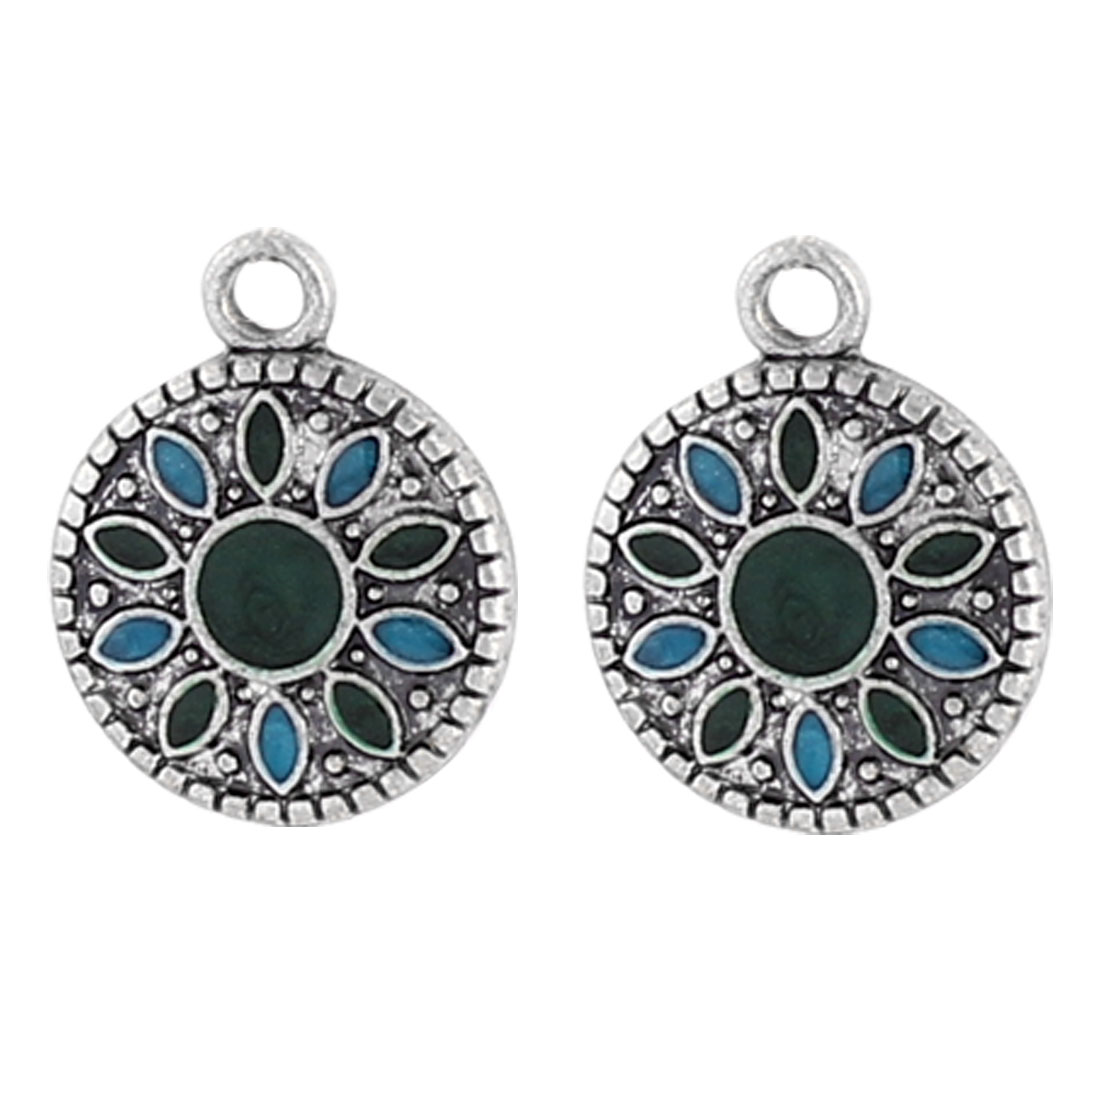 "1.2"" Length Silver Tone Metal Filled Circle Dangling Pendant Hook Earrings Earbobs Pair for Lady Women"